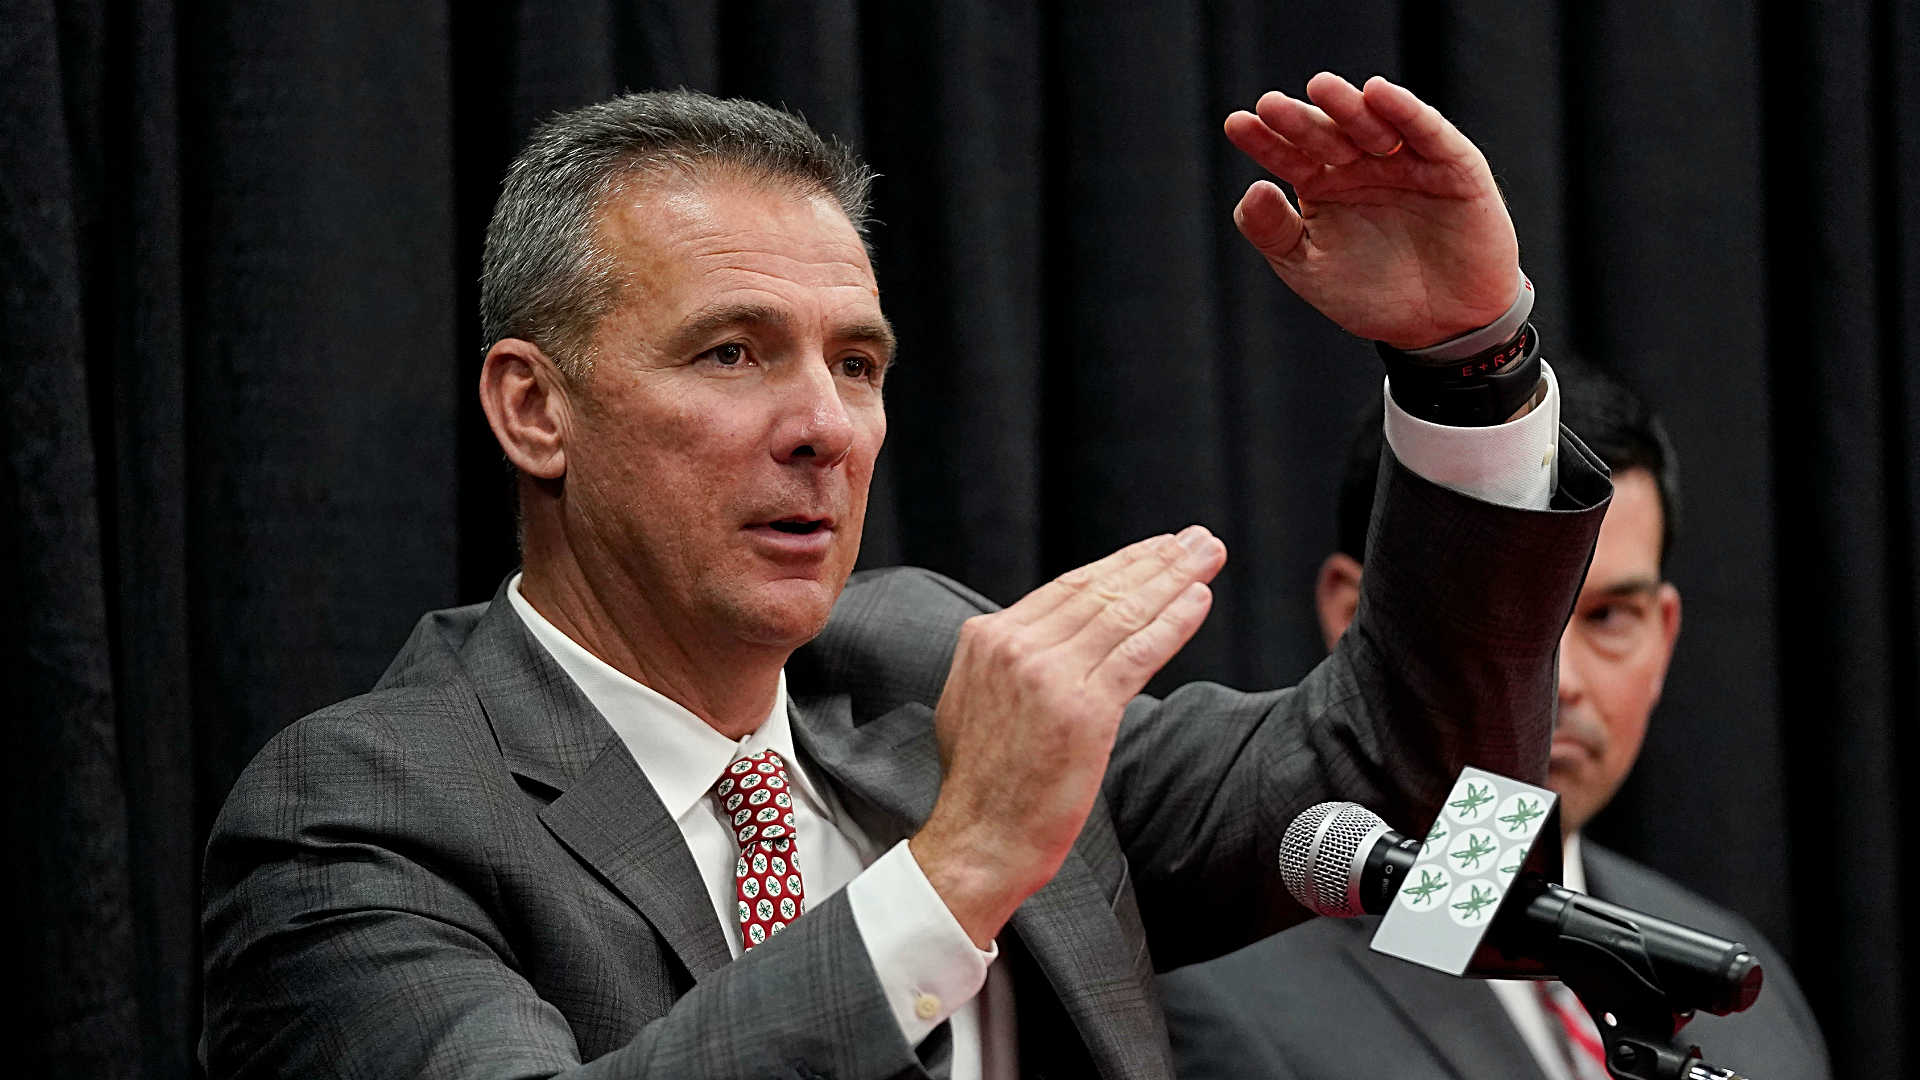 Urban Meyer says Florida, not Ohio State, has best gameday atmosphere